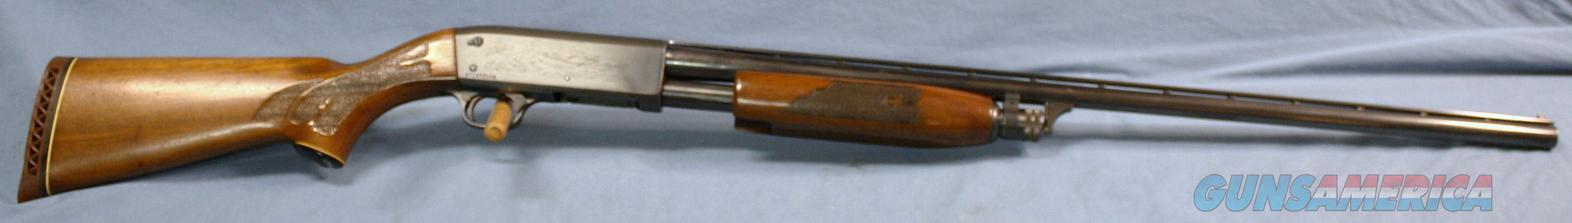 Ithaca Model 37 Featherlight Pump Shotgun 20 Gauge  Guns > Shotguns > Ithaca Shotguns > Pump